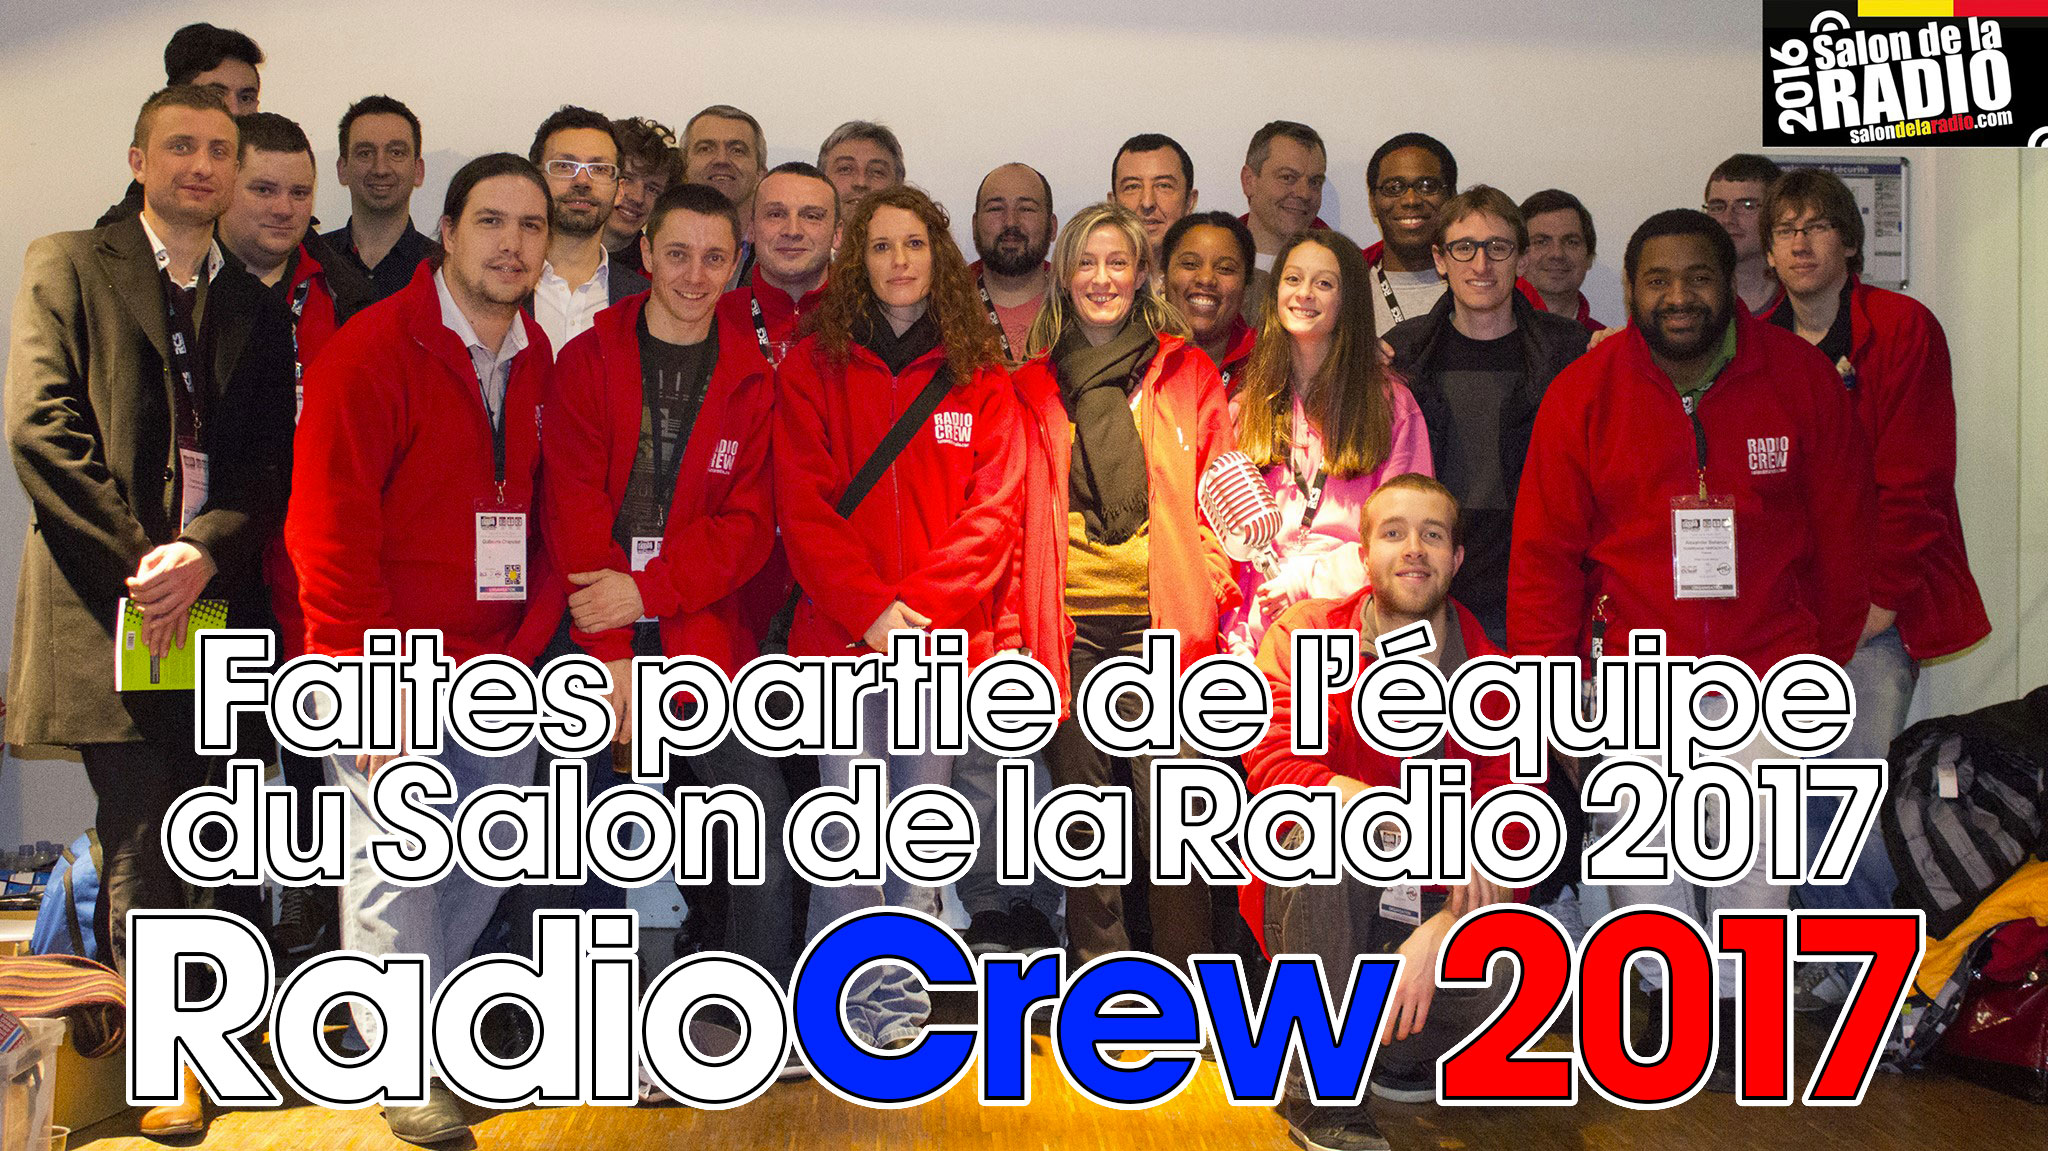 Salon de la radio 2017 int grez la radio crew for Salon de la radio 2017